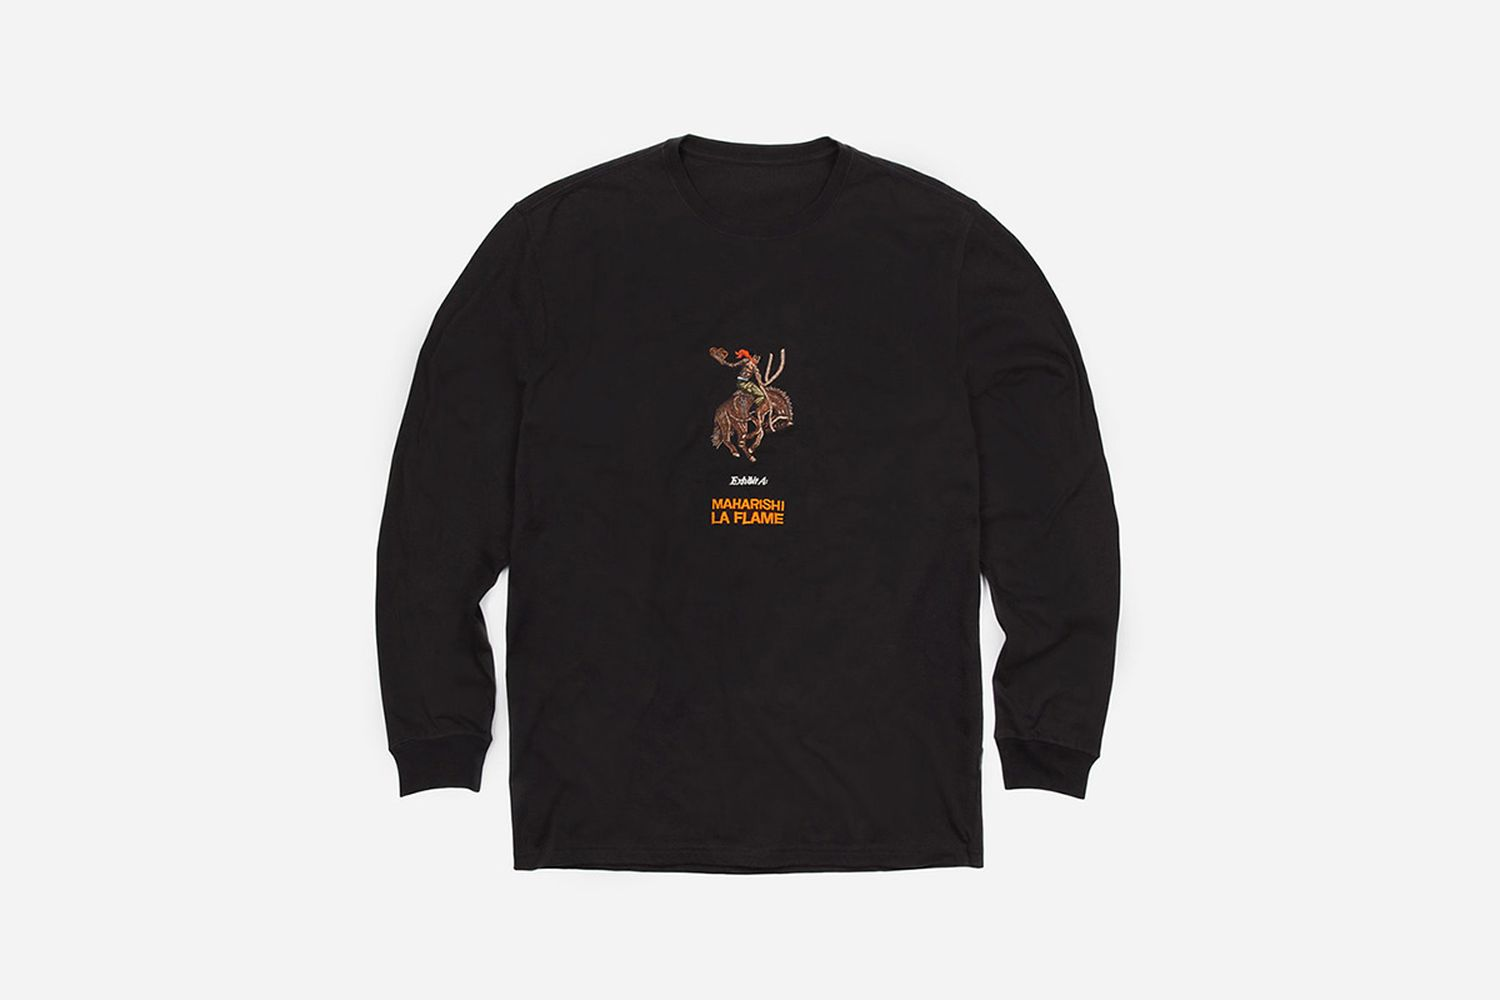 Year Of The Cowboy Longsleeve